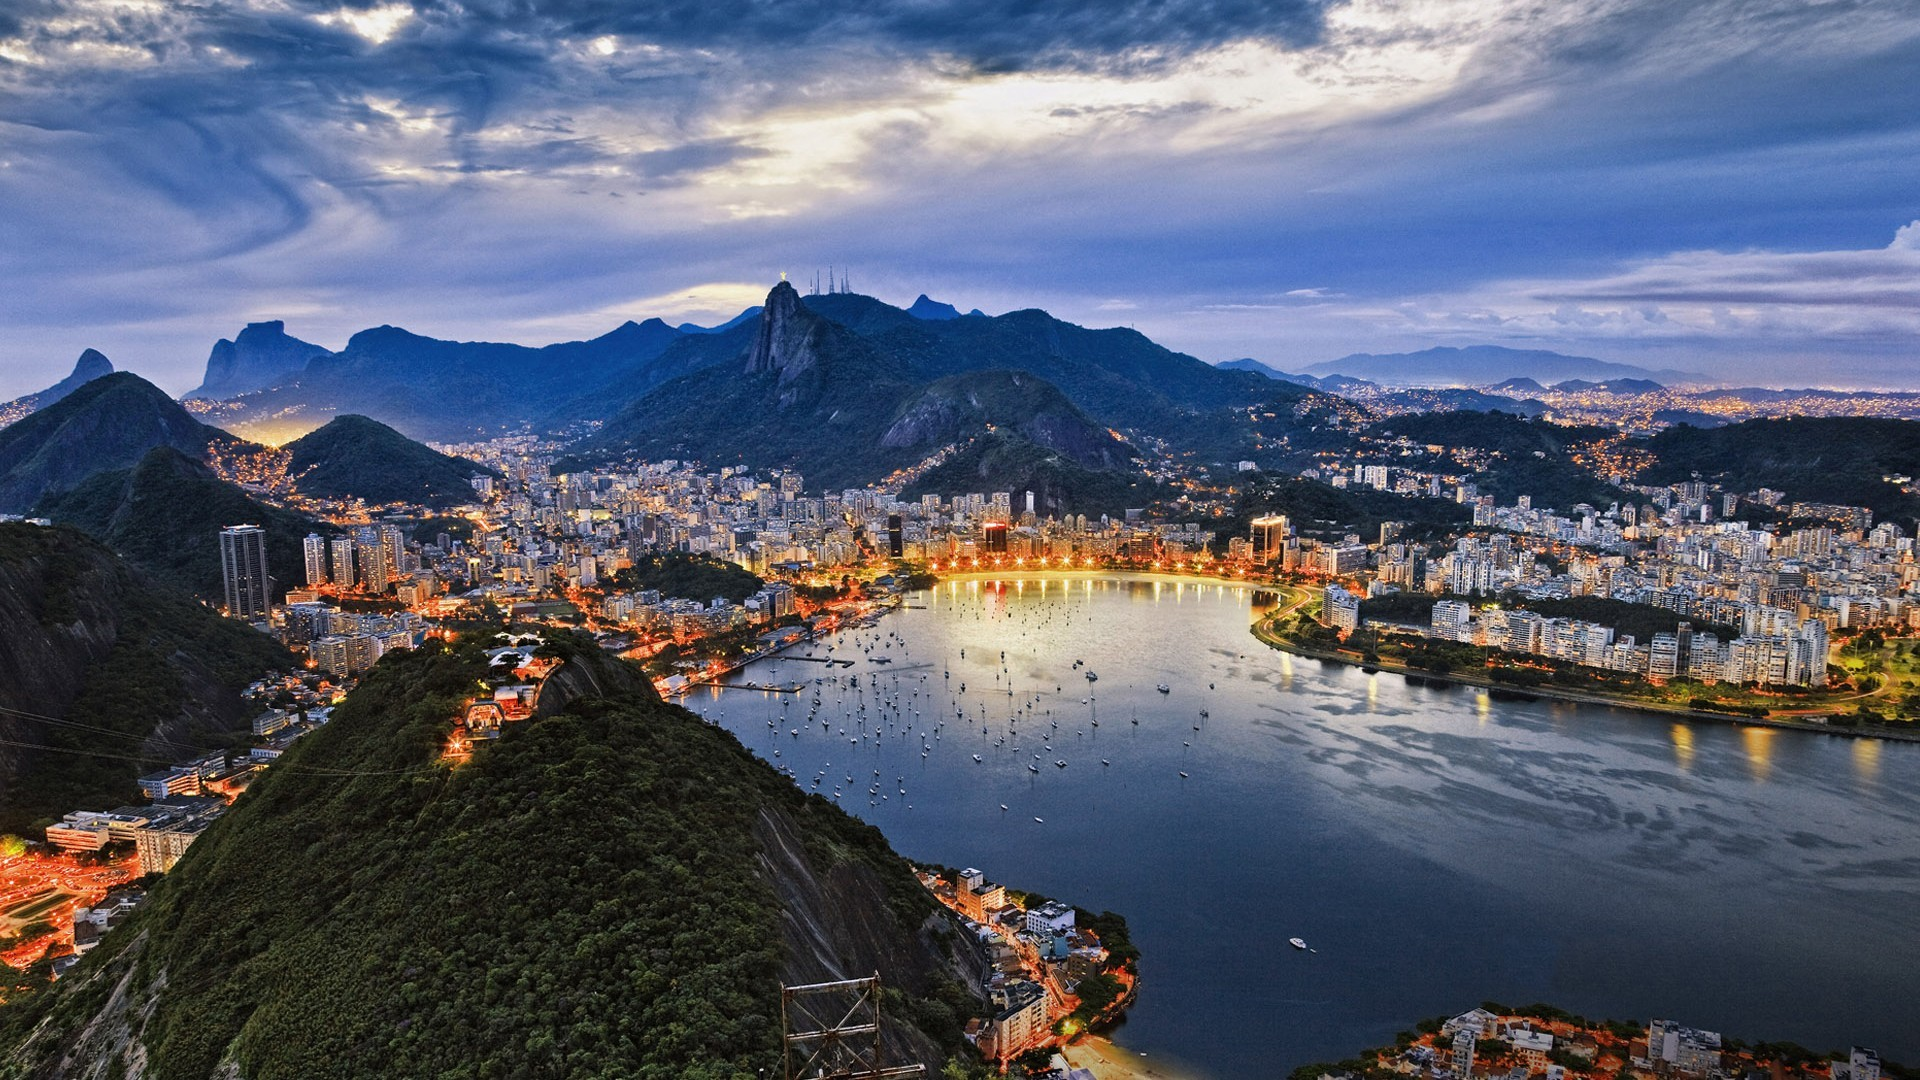 Landscapes cityscapes Rio de HD Wallpaper